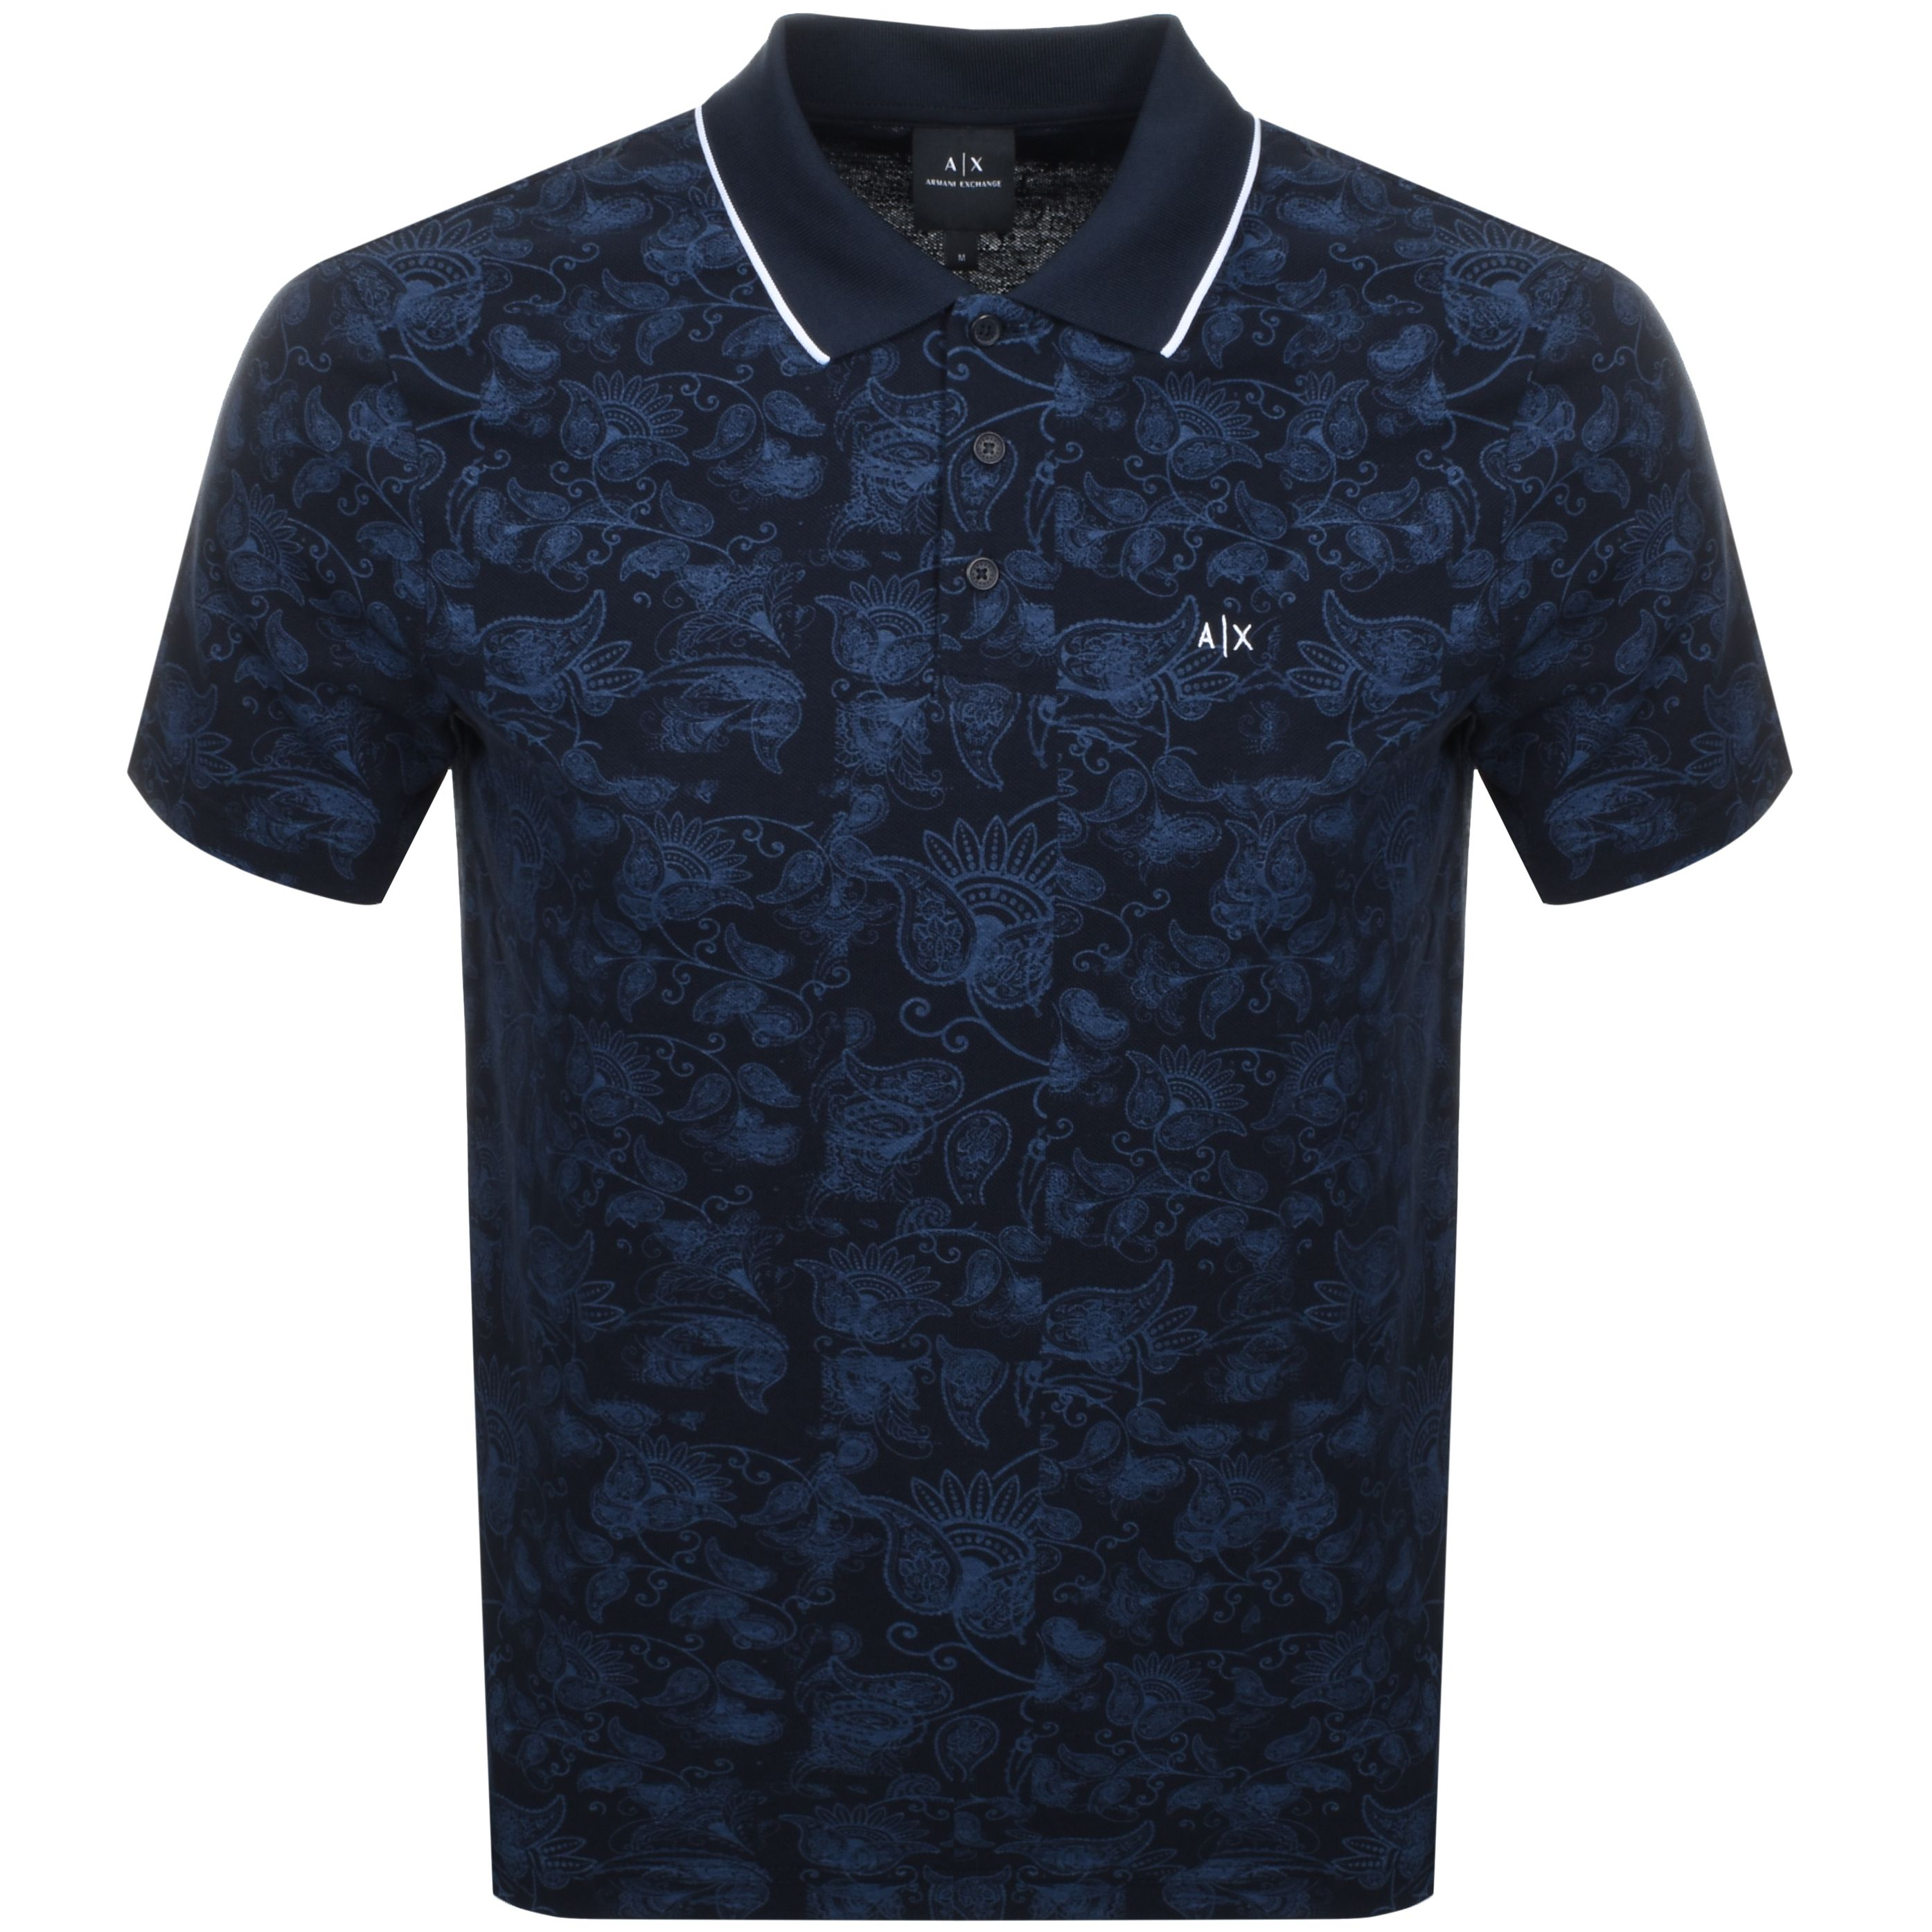 6e781502 ARMANI EXCHANGE PAISLEY POLO T SHIRT NAVY. #armaniexchange #cloth ...